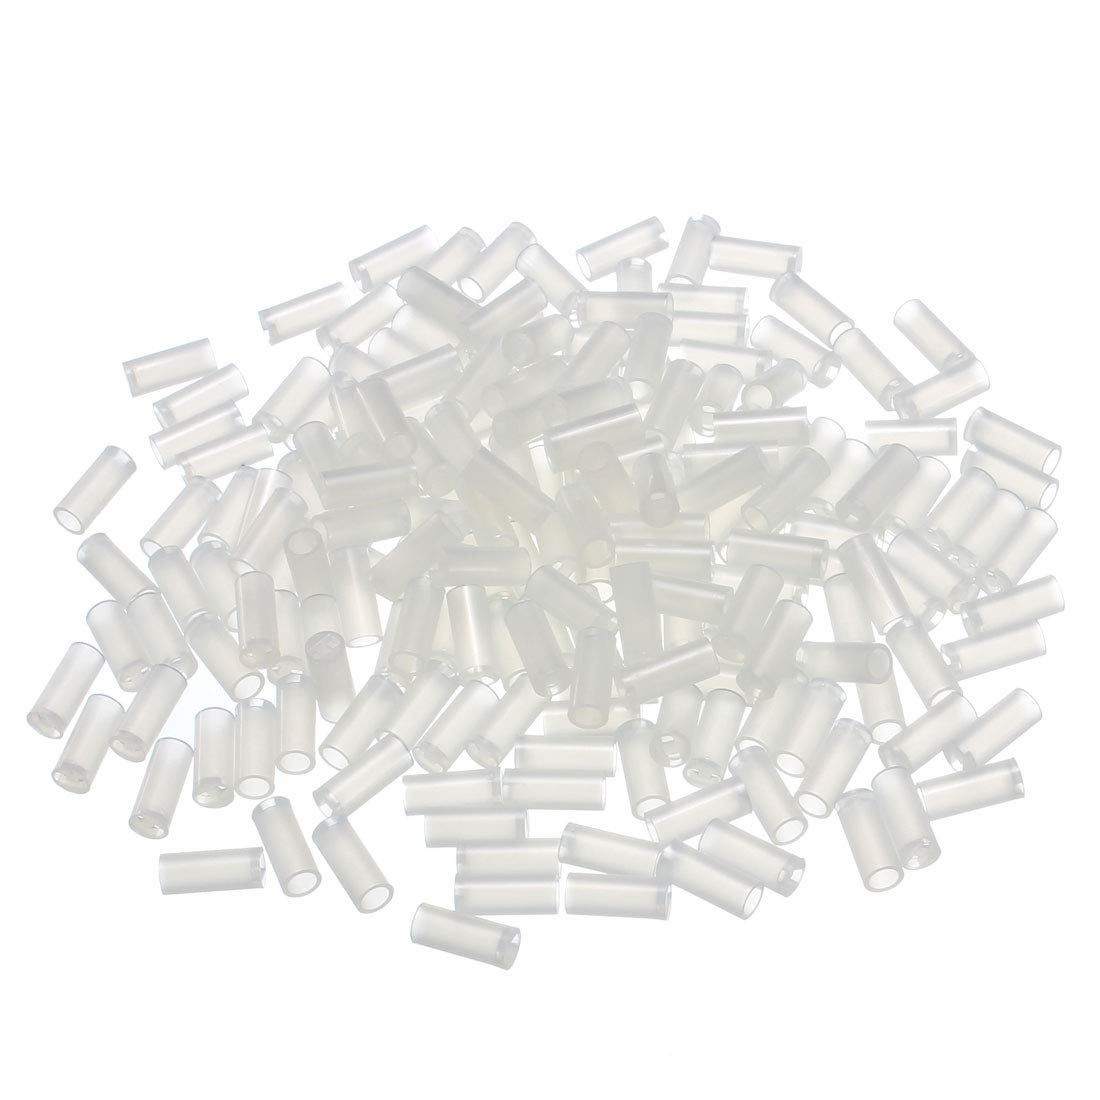 uxcell 200pcs 3x4x3mm Nylon Straight Insulating Tube PCB LED Mount Standoff Spacer